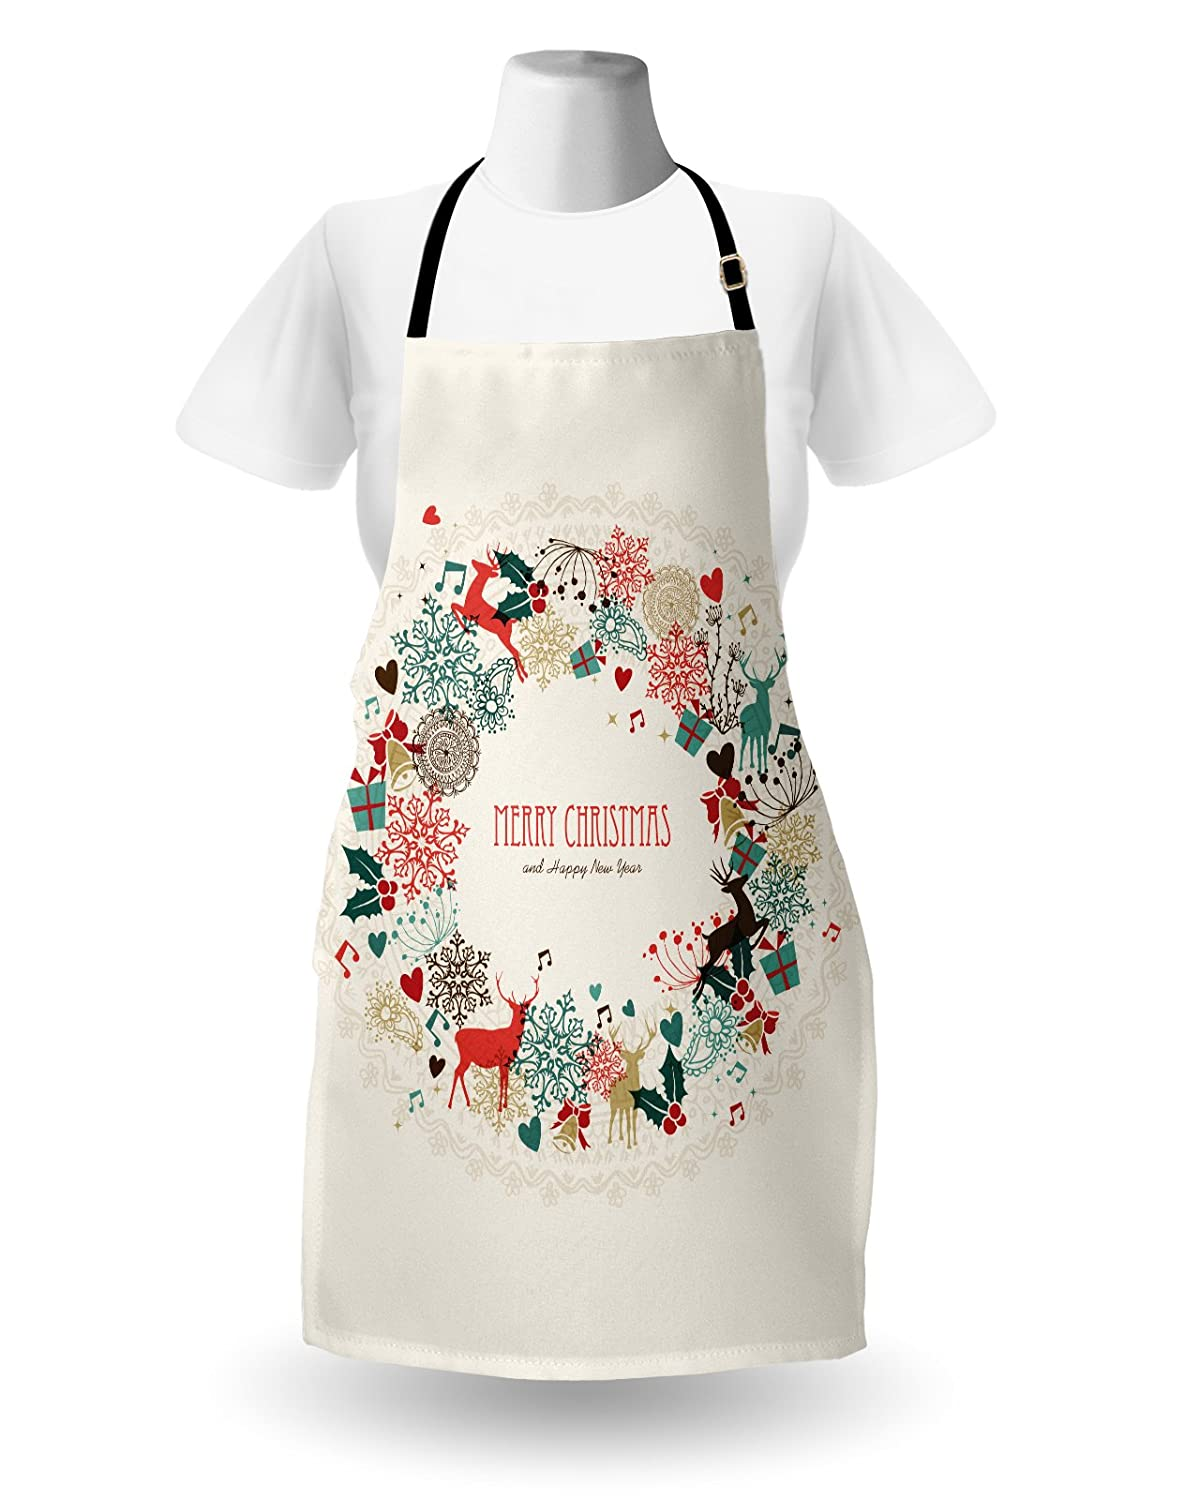 Sleeping Mermaid Design with Wavy Hair Hand Drawn Effect Grungy Backdrop Pale Blue Dark Teal Ambesonne Mermaid Apron Unisex Kitchen Bib Apron with Adjustable Neck for Cooking Baking Gardening